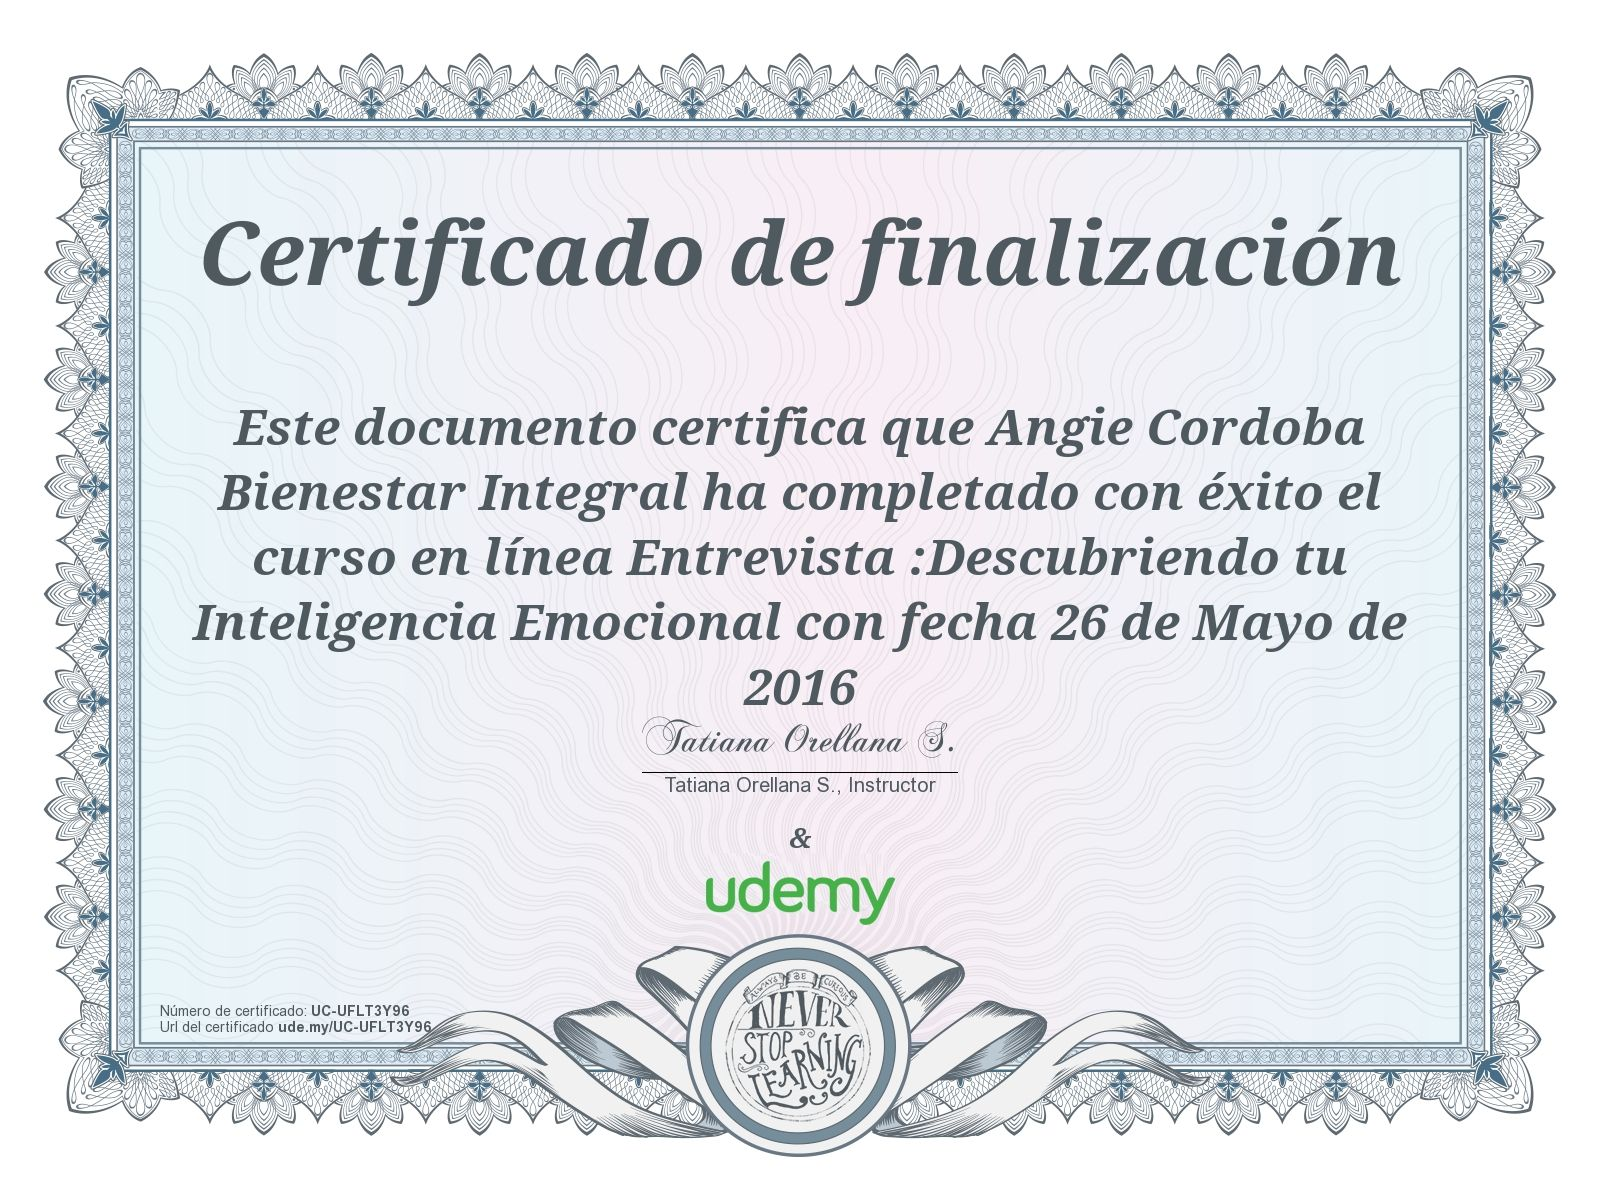 Mejores cursos online | Udemy | Angie Cordoba - Angiexitosa ...